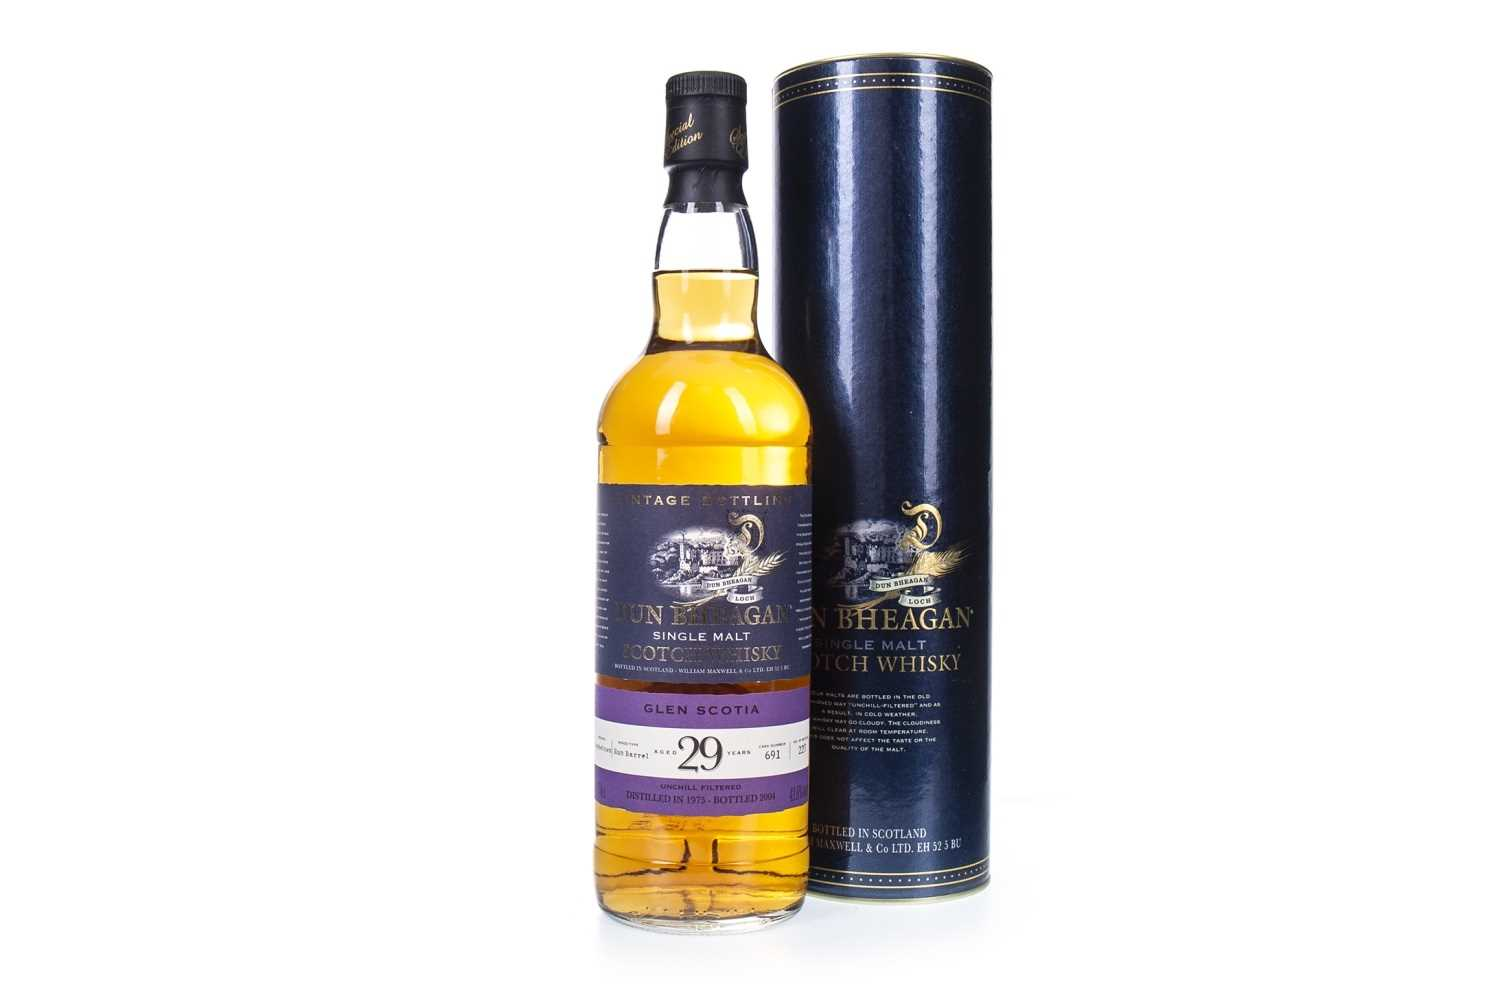 Lot 18-GLEN SCOTIA 1975 DUN BHEGAN AGED 29 YEARS